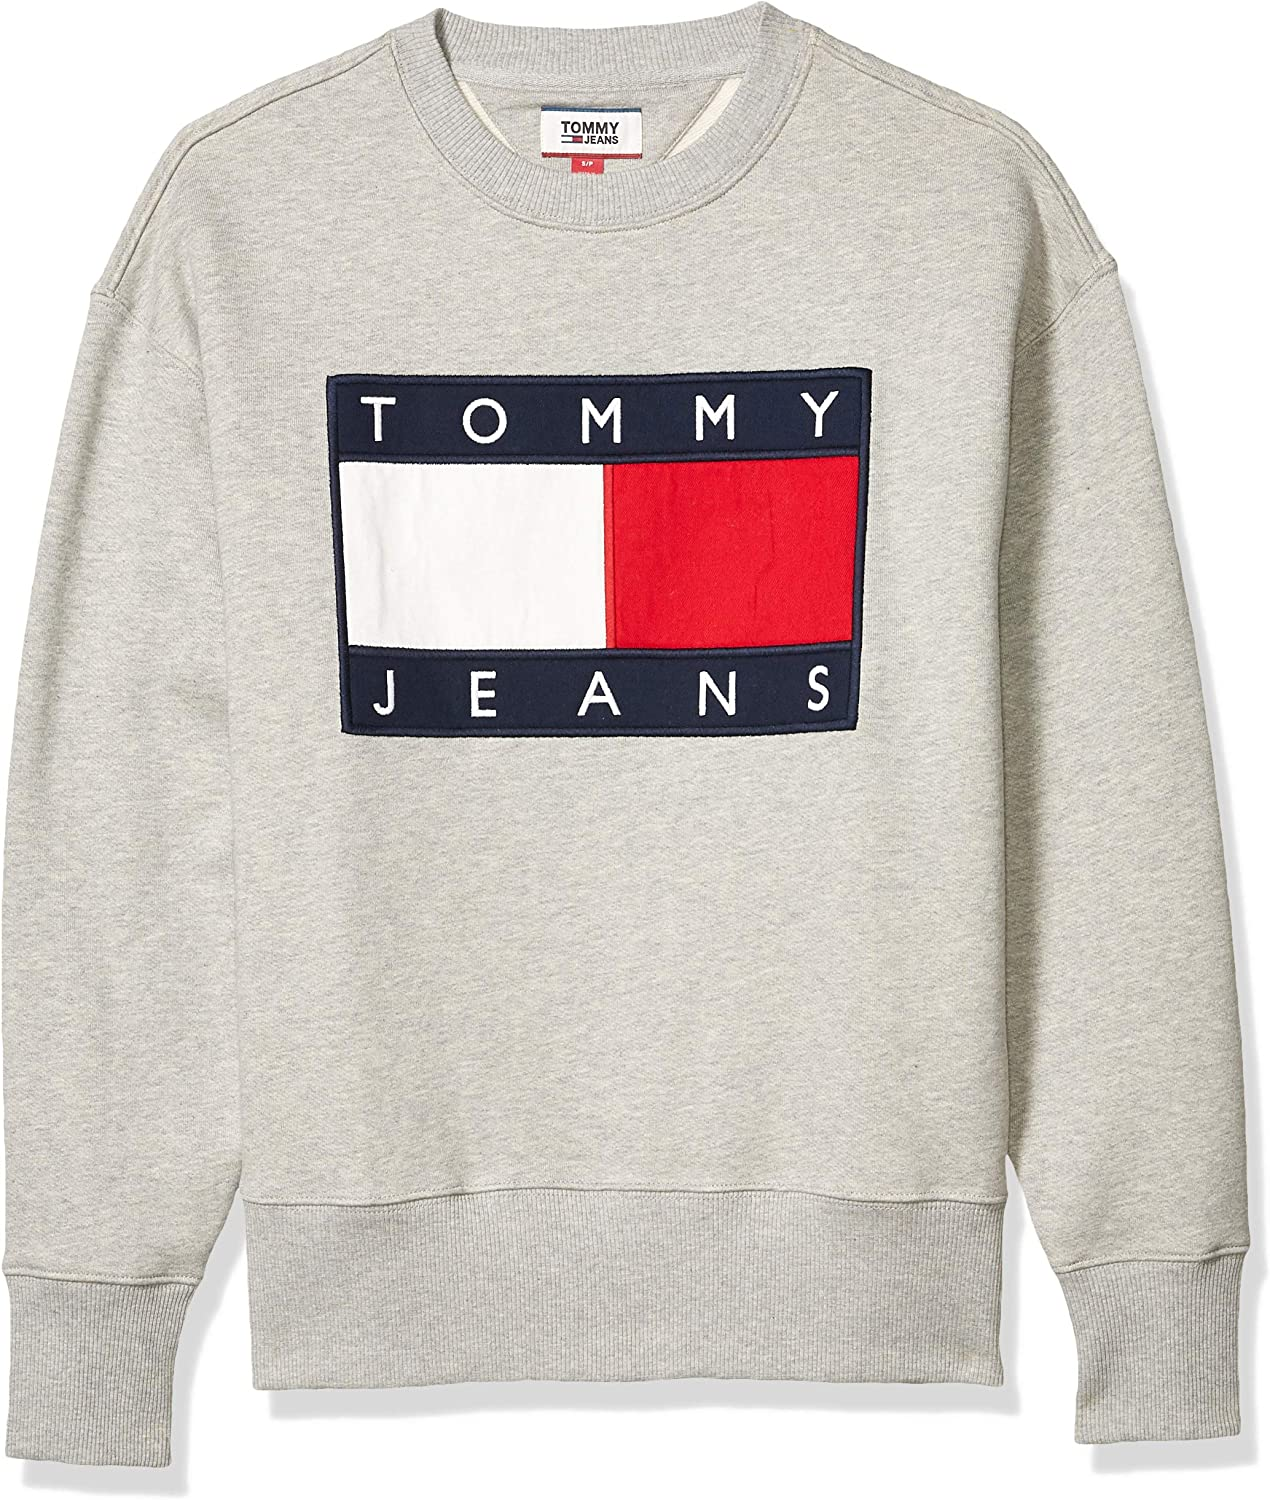 Limited time Popular product cheap sale Tommy Hilfiger Flag Sweatshirt Patch Crewneck